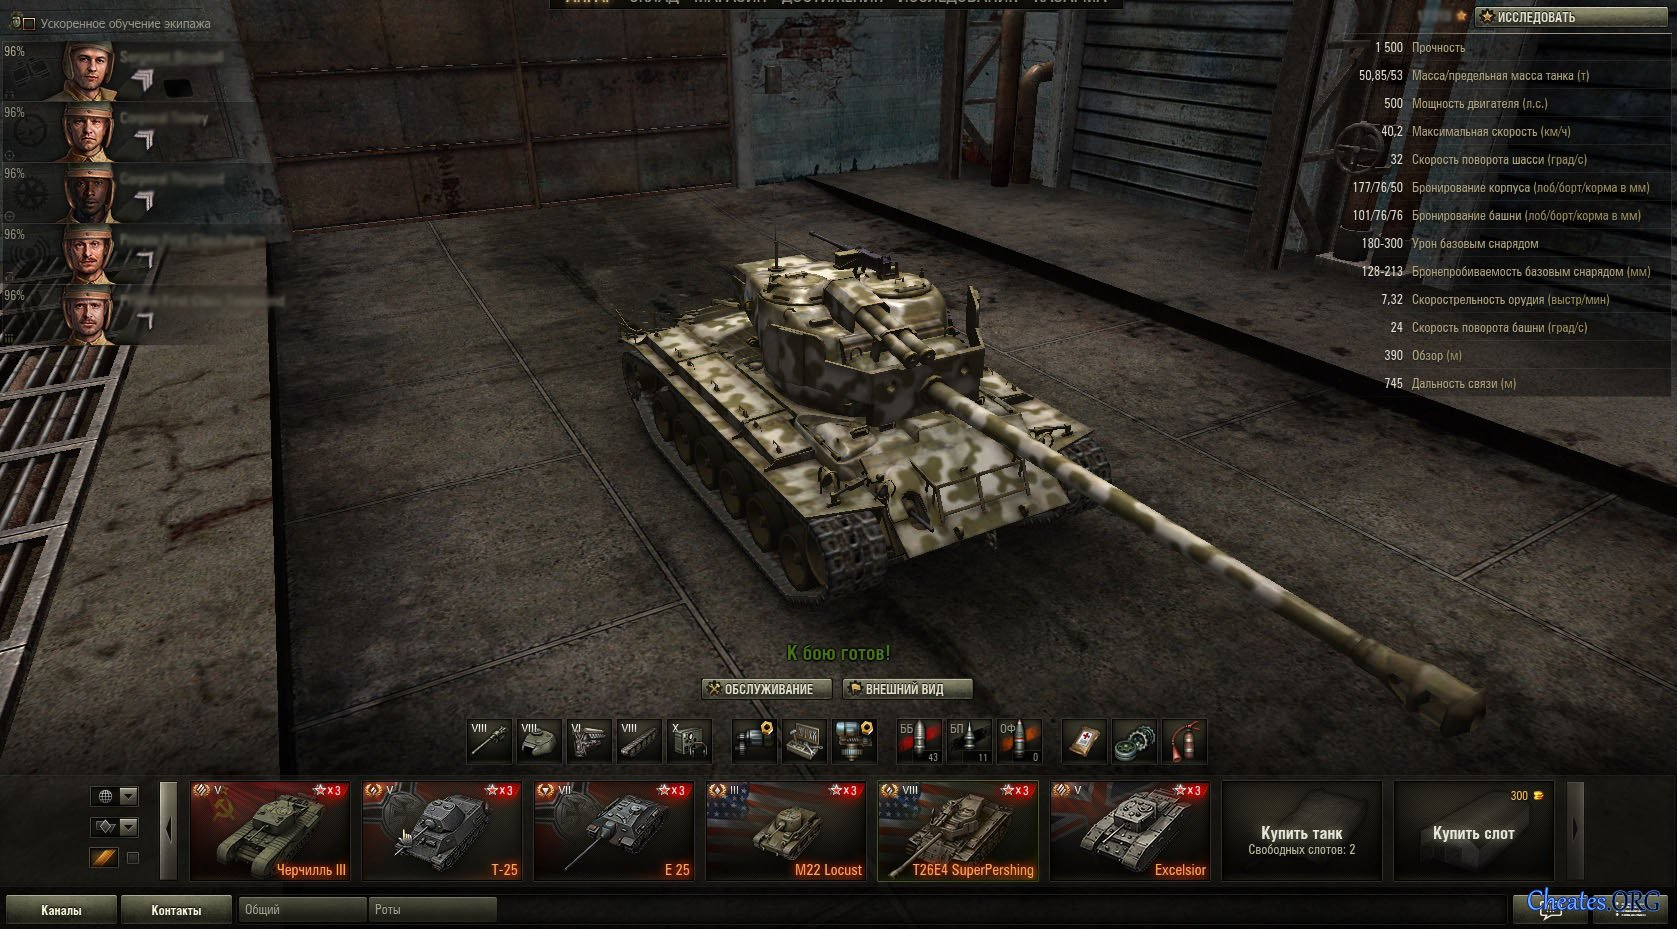 Directx 11 в игре world of tanks